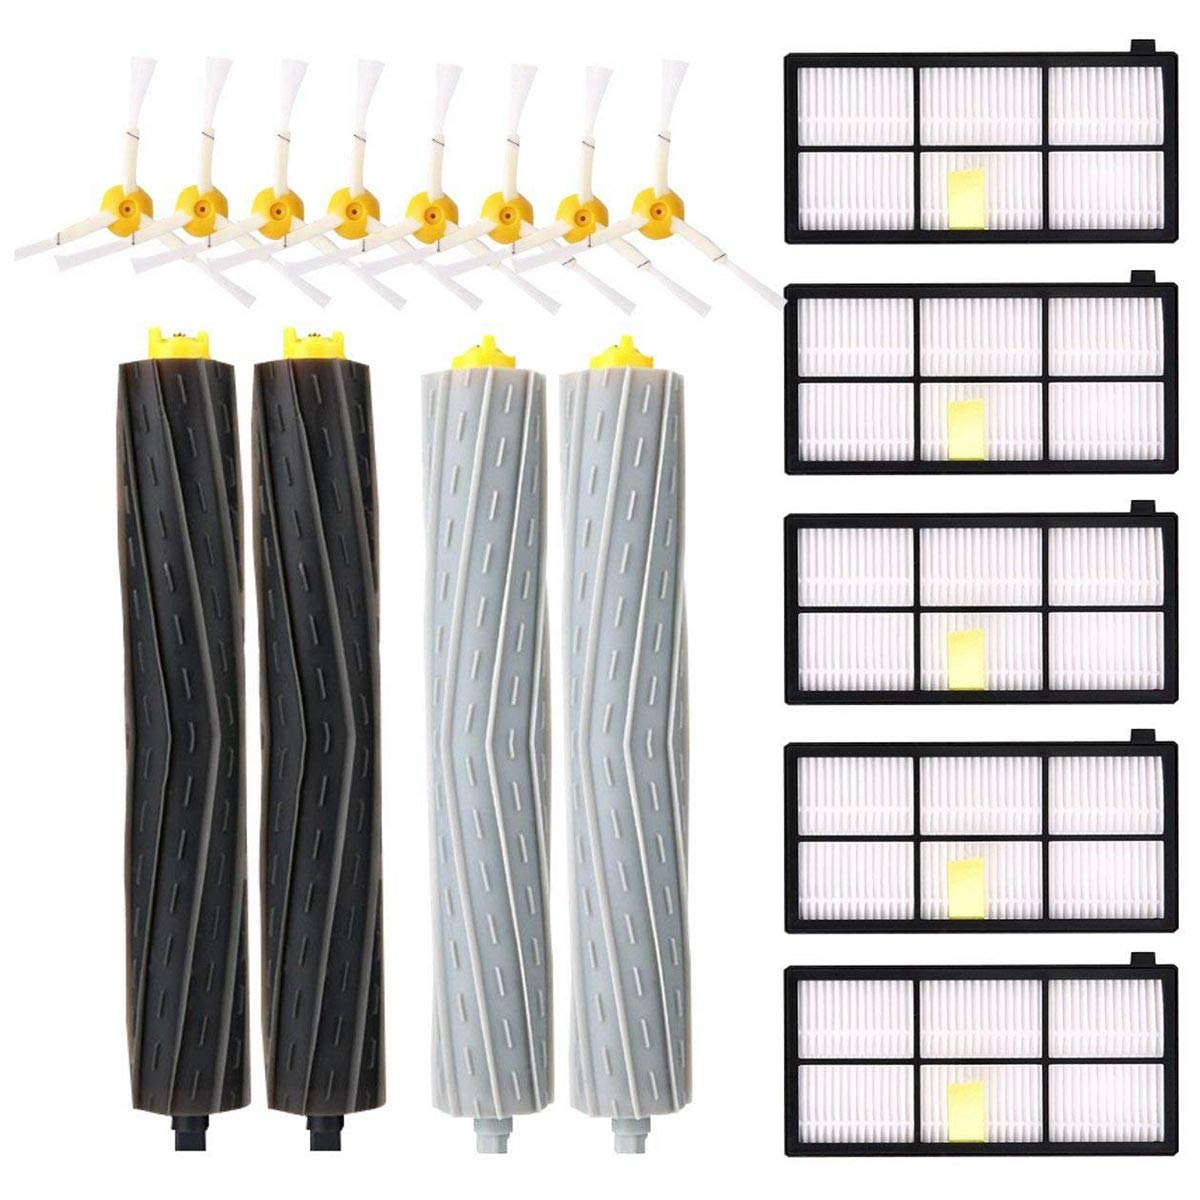 Toogoo Replacement Parts Kit iRobot Roomba 980 990 900 896 886 870 865 866 800 Accessories Kit 8 Side Brushes + 5 Filter + 2 Rollers